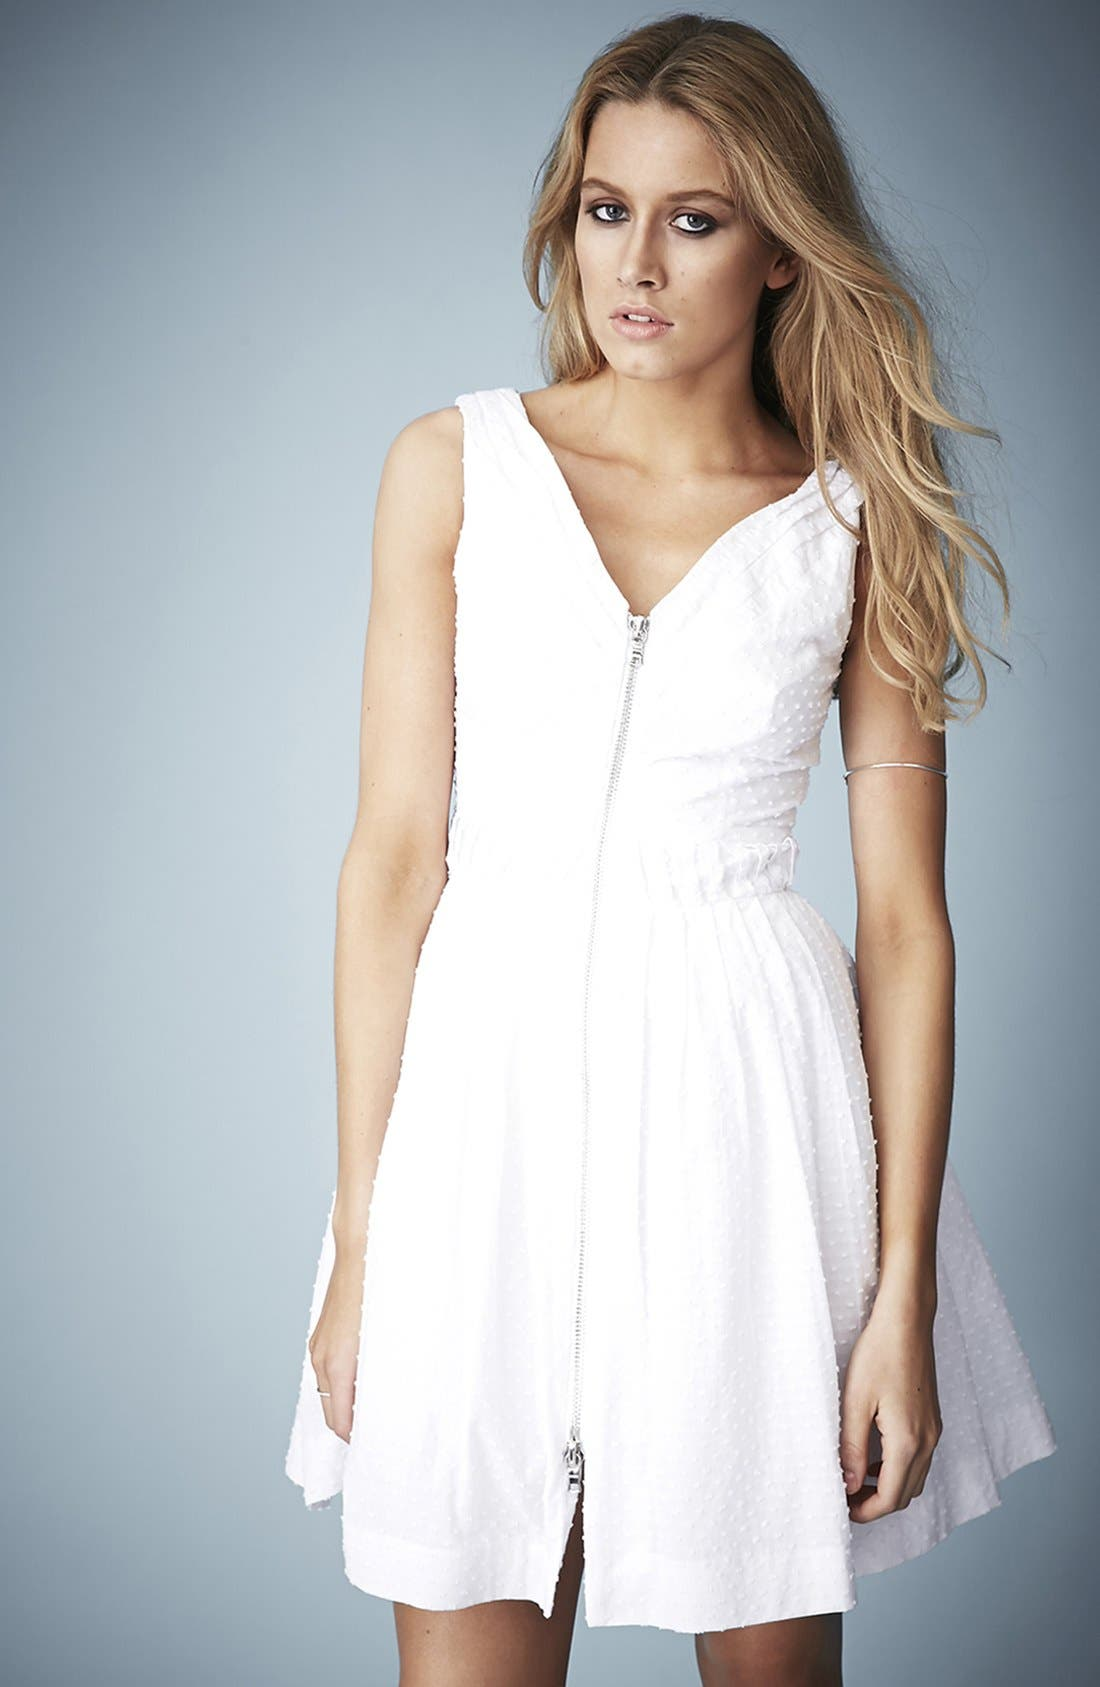 Main Image - Kate Moss for Topshop Zip Front Cotton Dobby Sundress